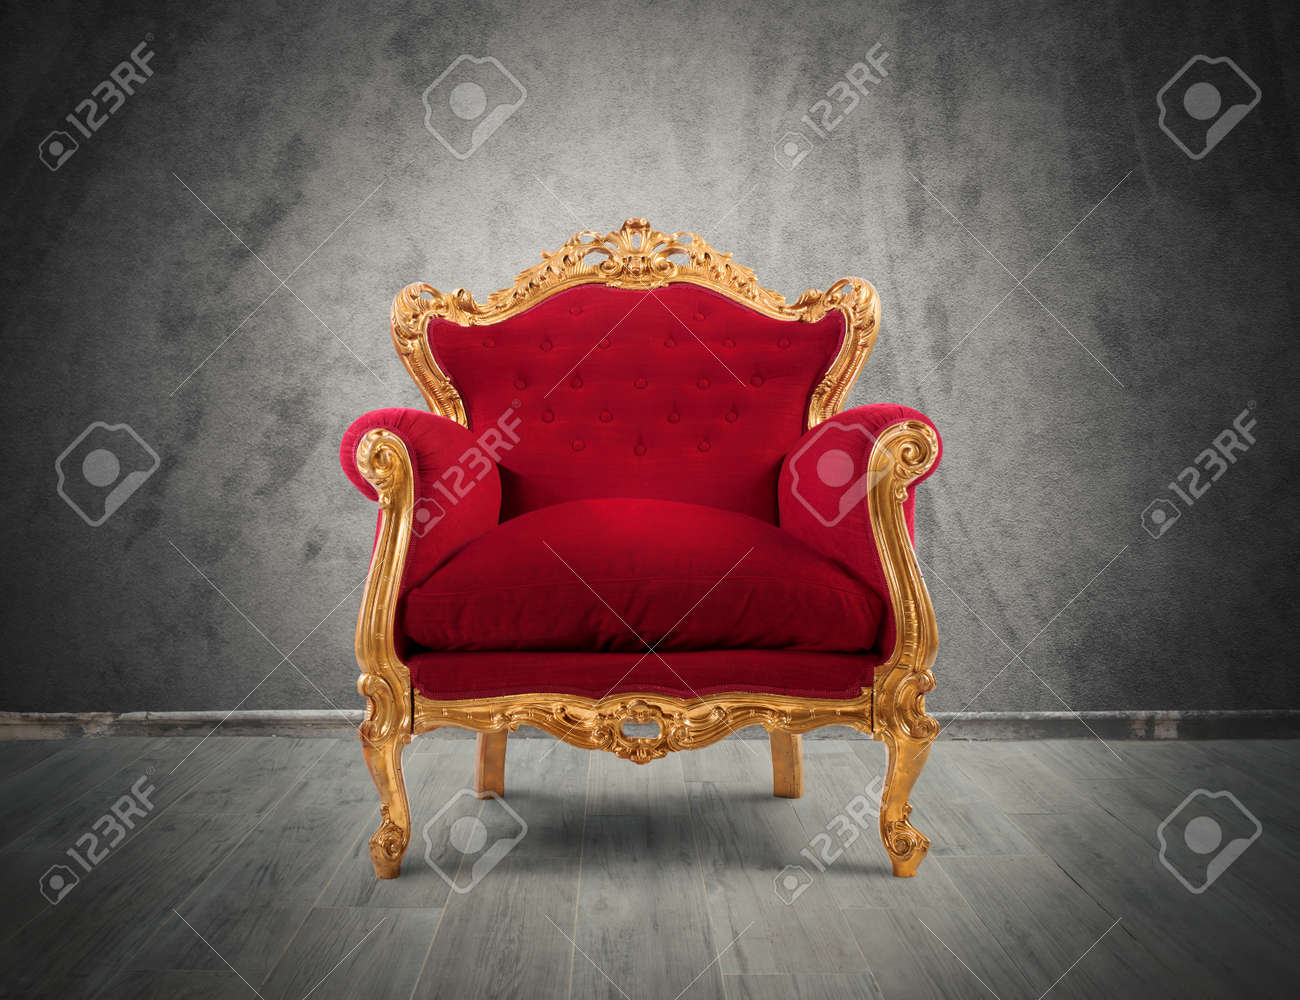 Concept Of Luxury And Success With Red Velvet And Gold Armchair Stock Photo    43195603